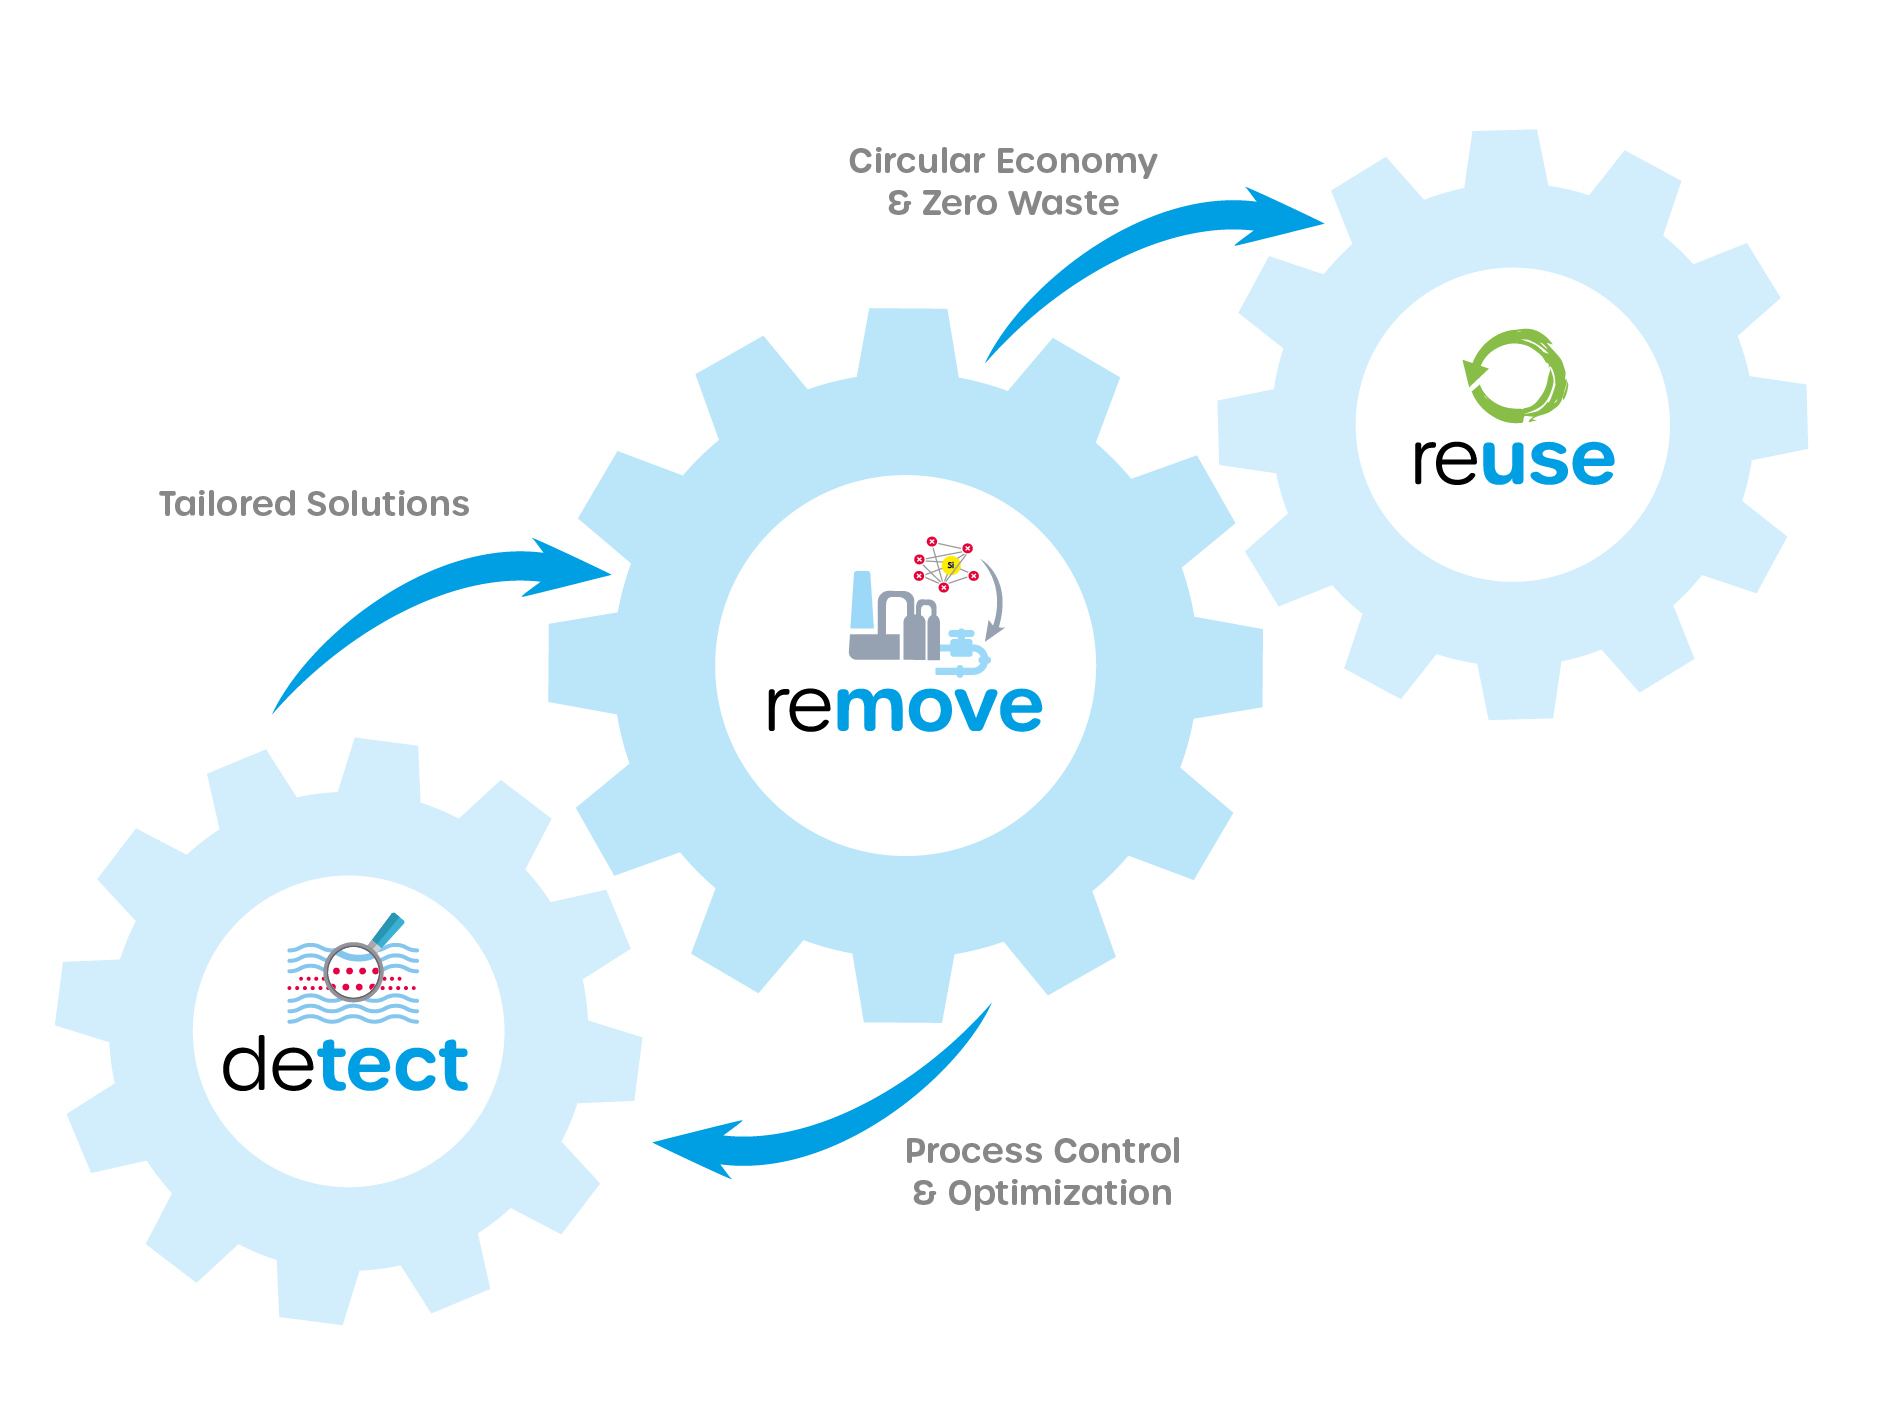 detect remove reuse microplastics and micrpollutants from various waters